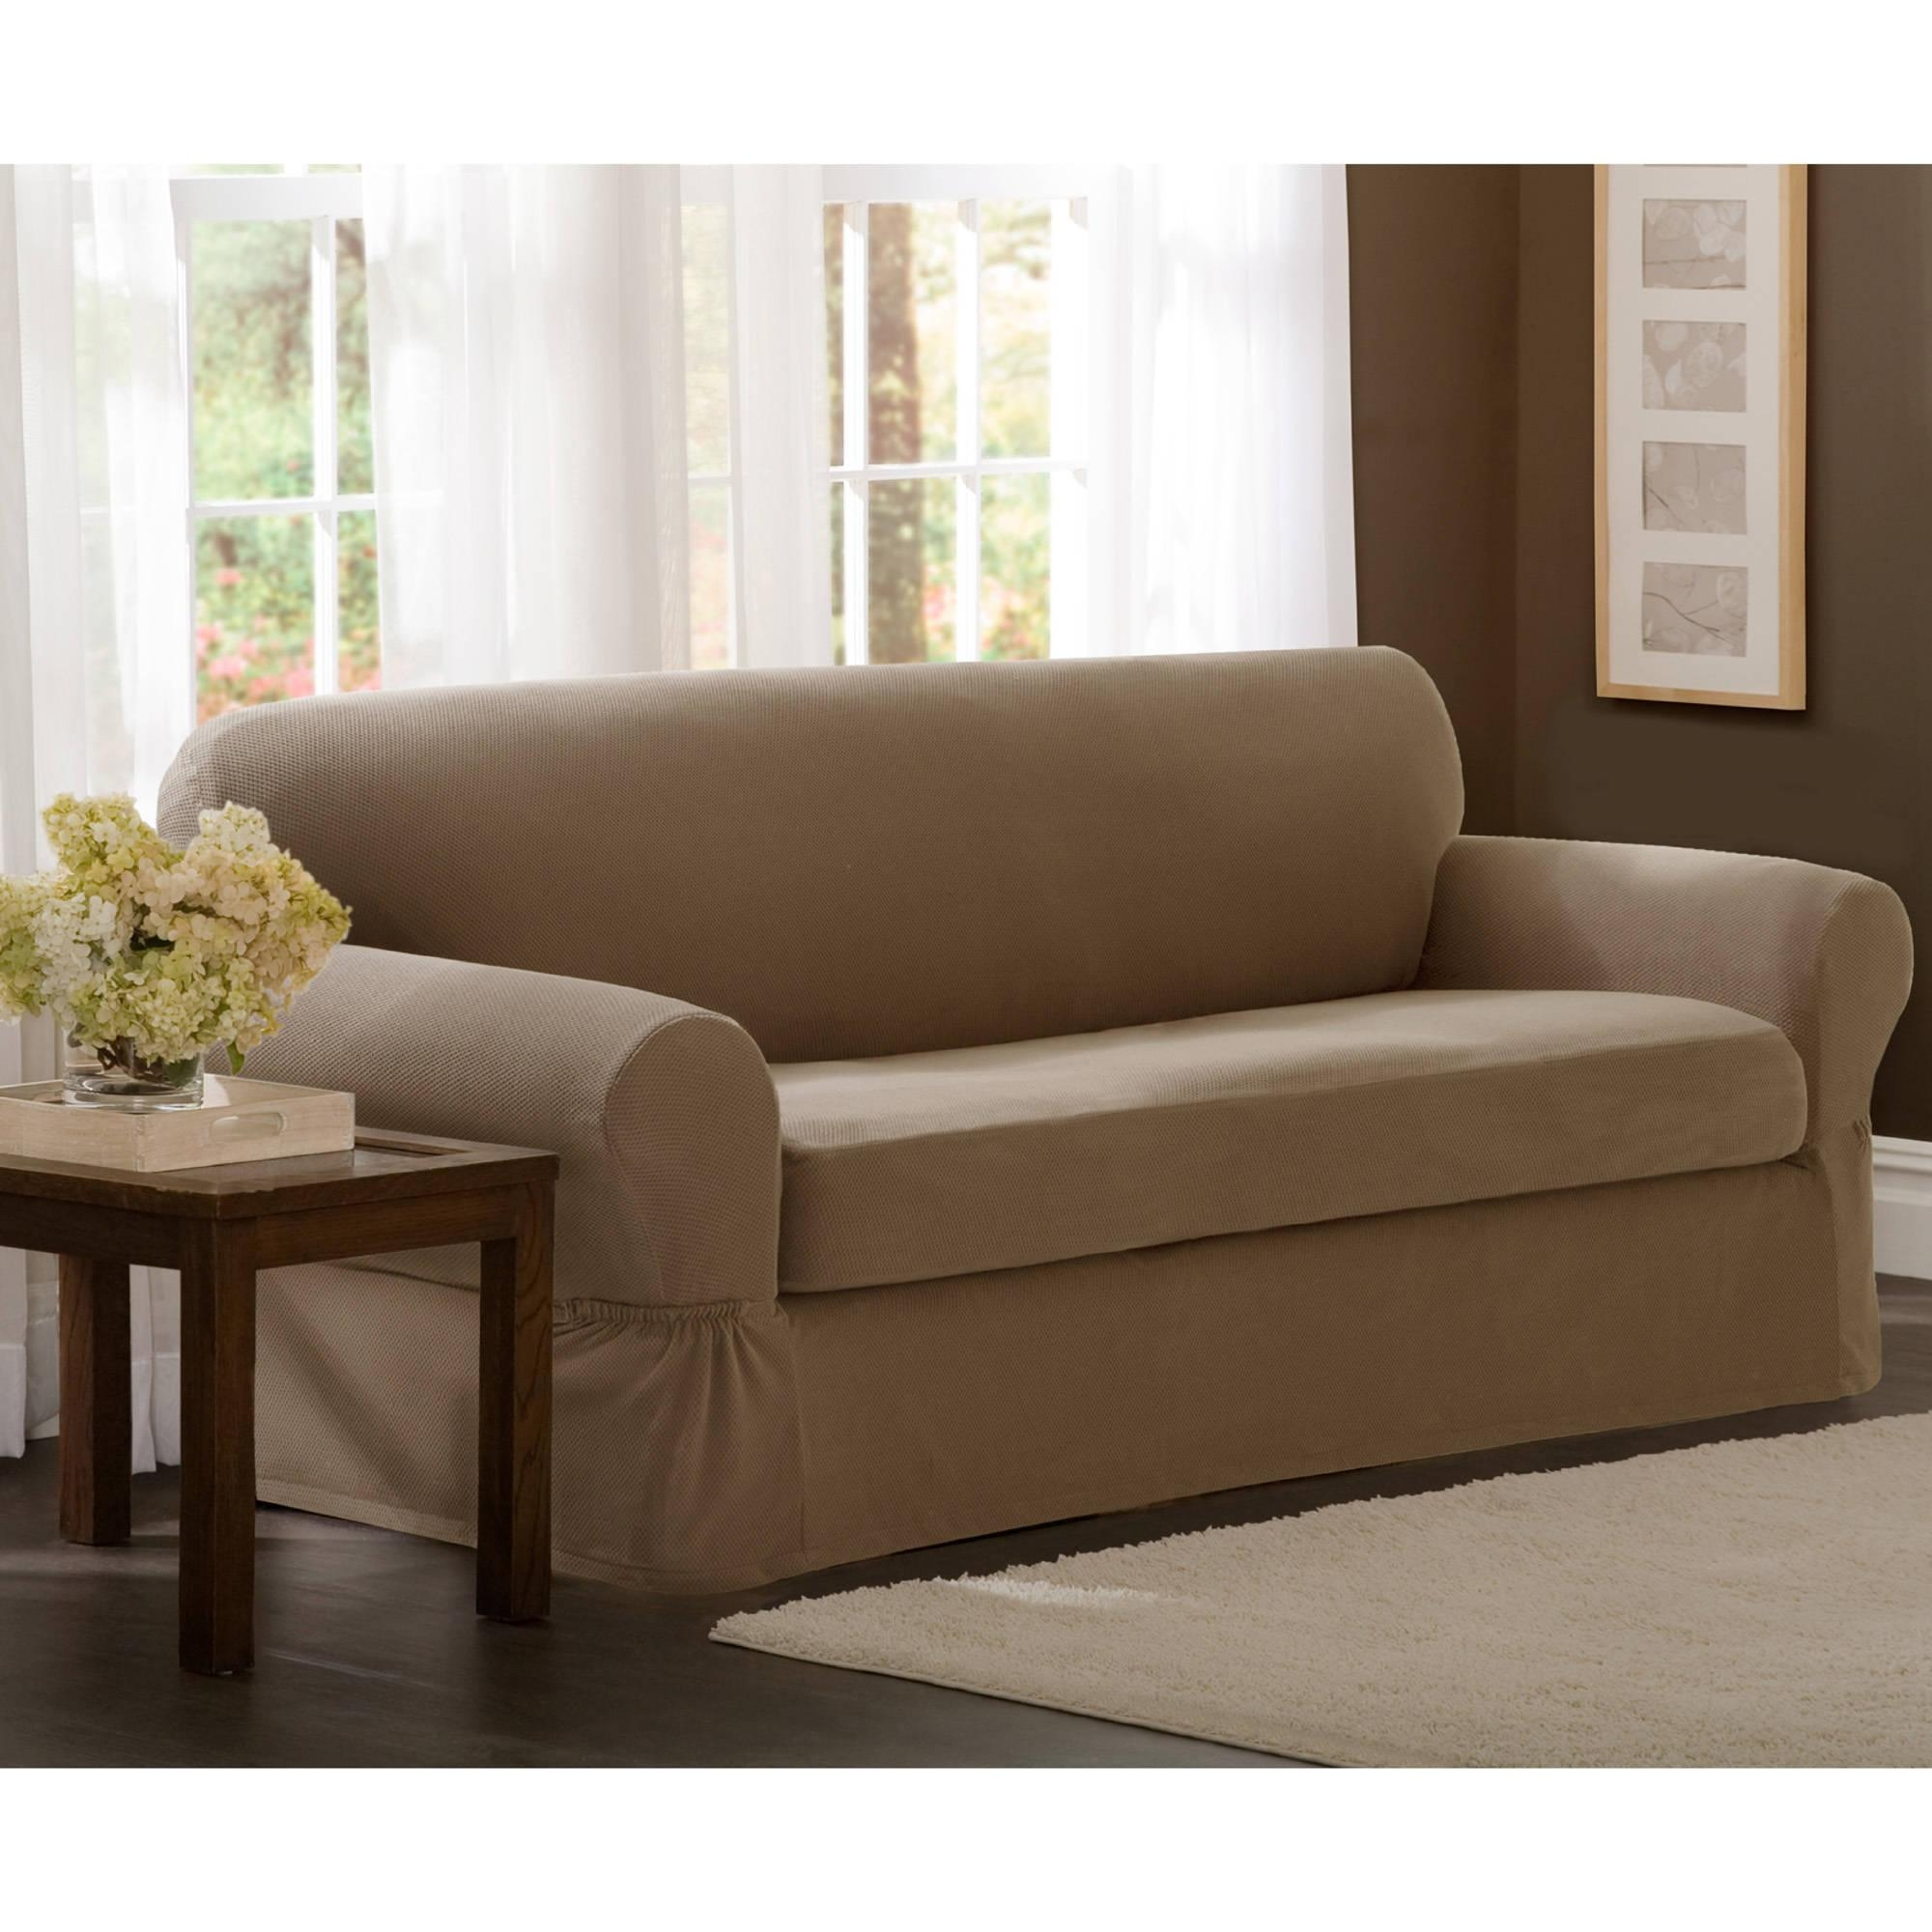 Maytex Stretch 2 Piece Sofa Slipcover – Walmart Intended For 3 Piece Slipcover Sets (View 6 of 20)